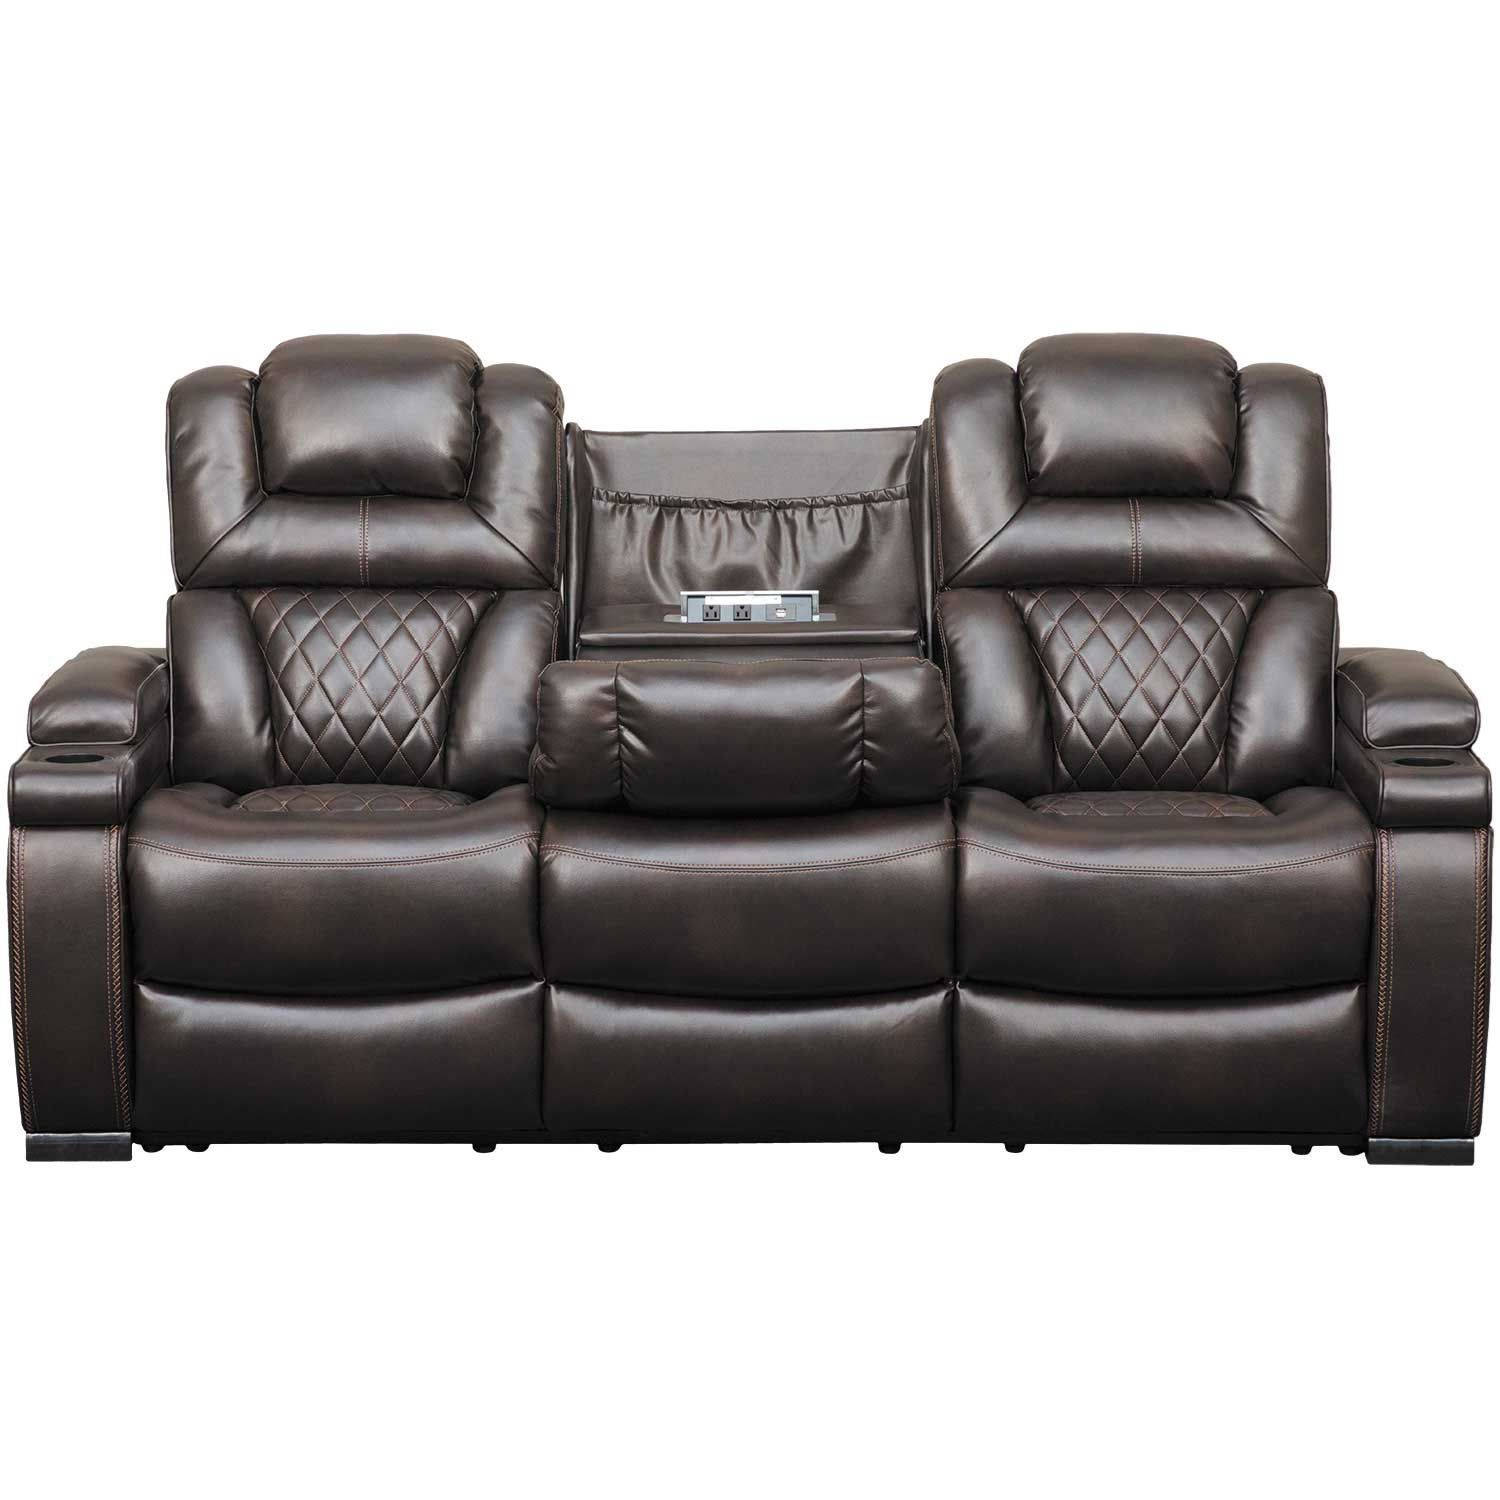 Warnerton Power Reclining Sofa With Drop Table Power Reclining Sofa Reclining Sofa Ashley Furniture Sofas